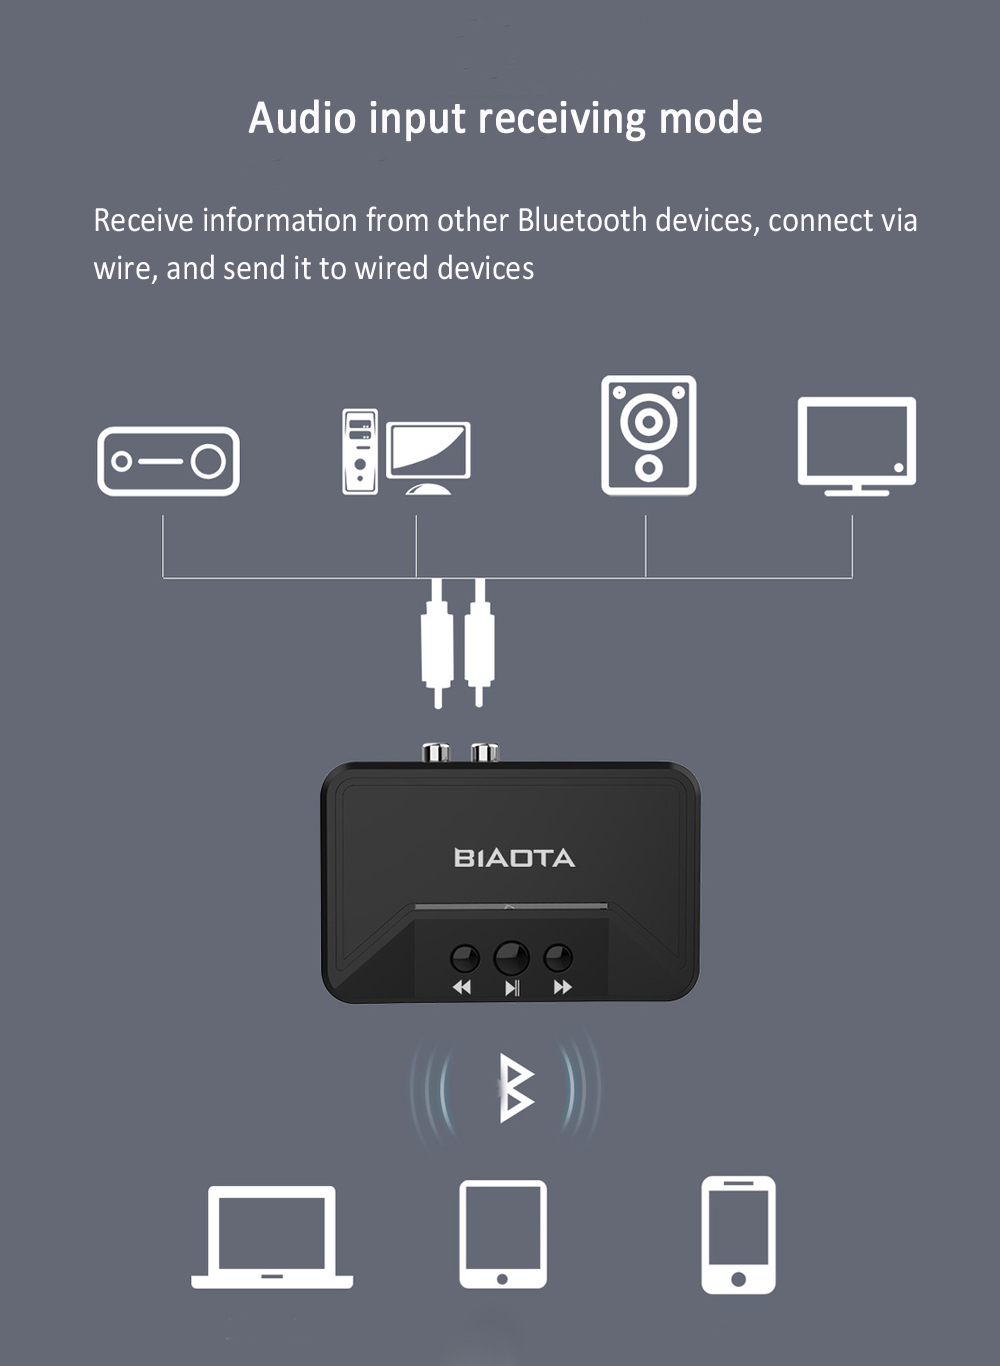 BT300 Bluetooth 5.0 Audio Receiver Wireless Conversion Fiber Optic RCA AUX USB Adapter - Black